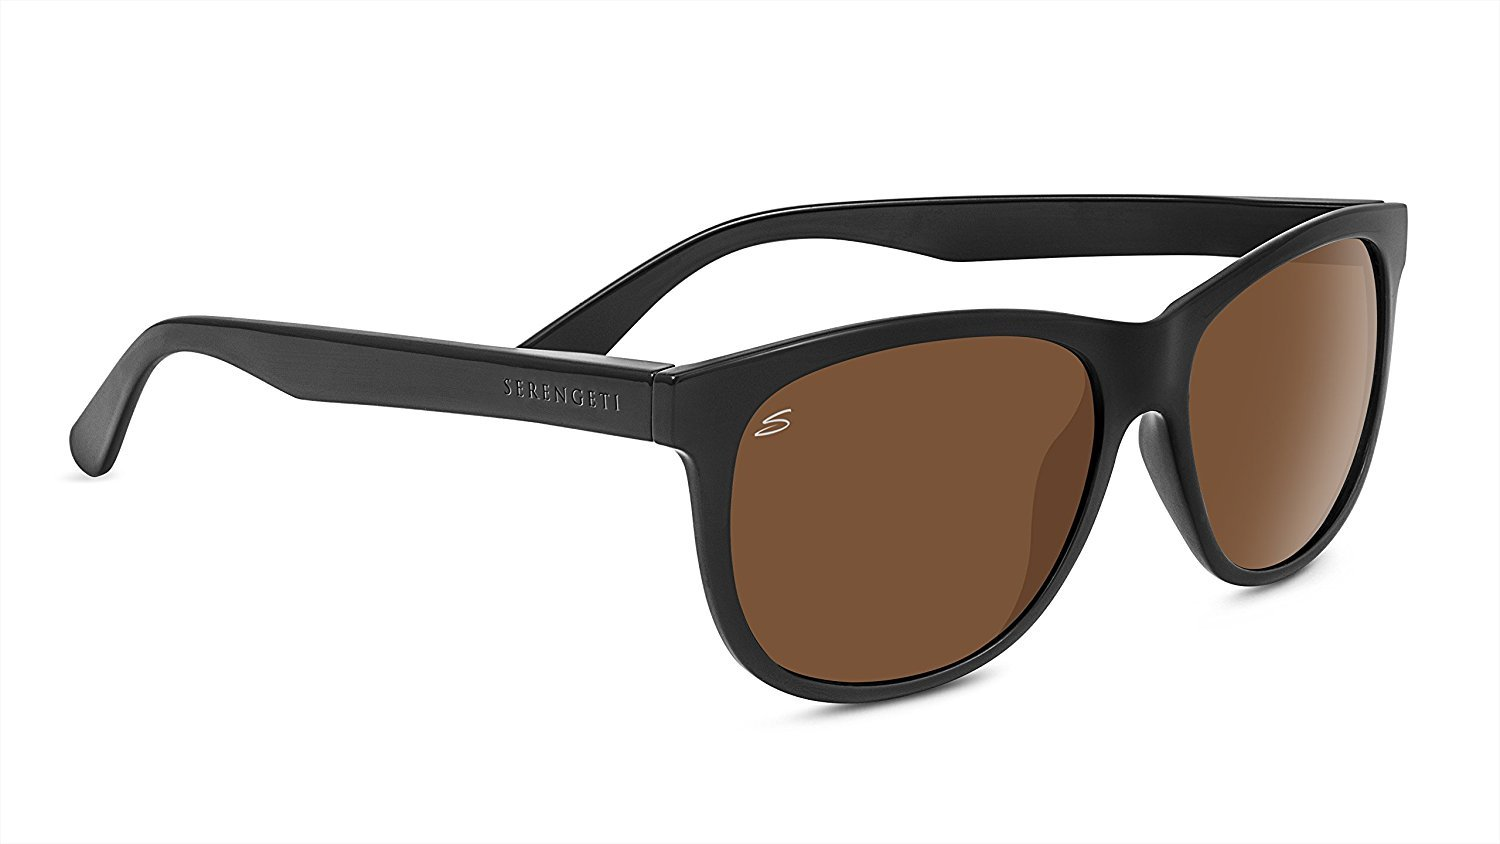 Serengeti 8359 Ostuni Polarized Drivers Sunglasses, Shiny Black by Serengeti